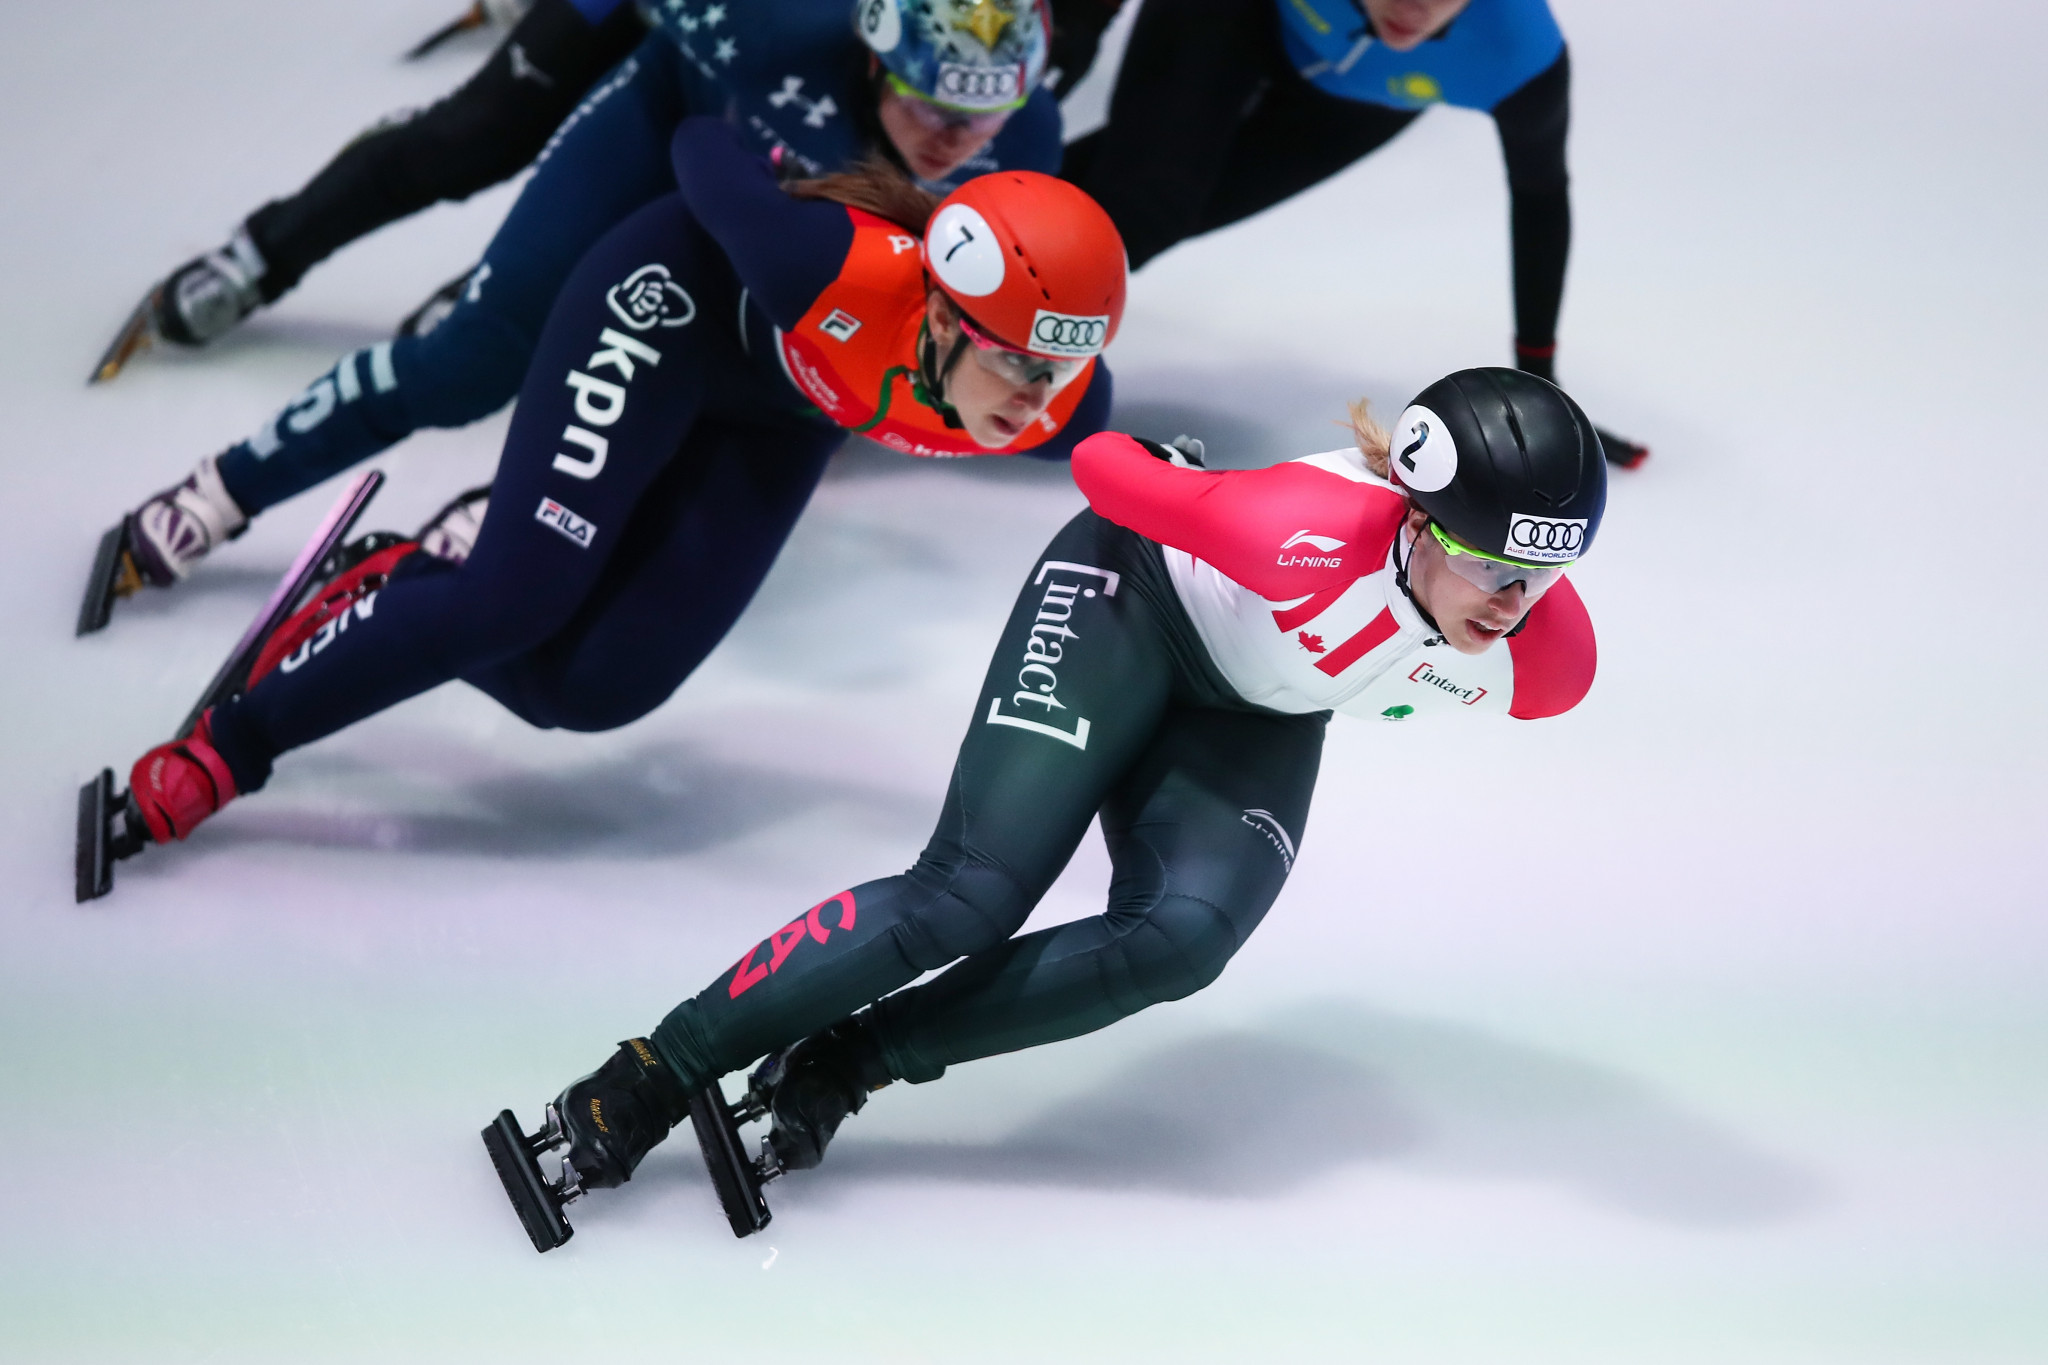 Pyeongchang 2018 qualification battle to resume at ISU Short Track World Cup in Shanghai